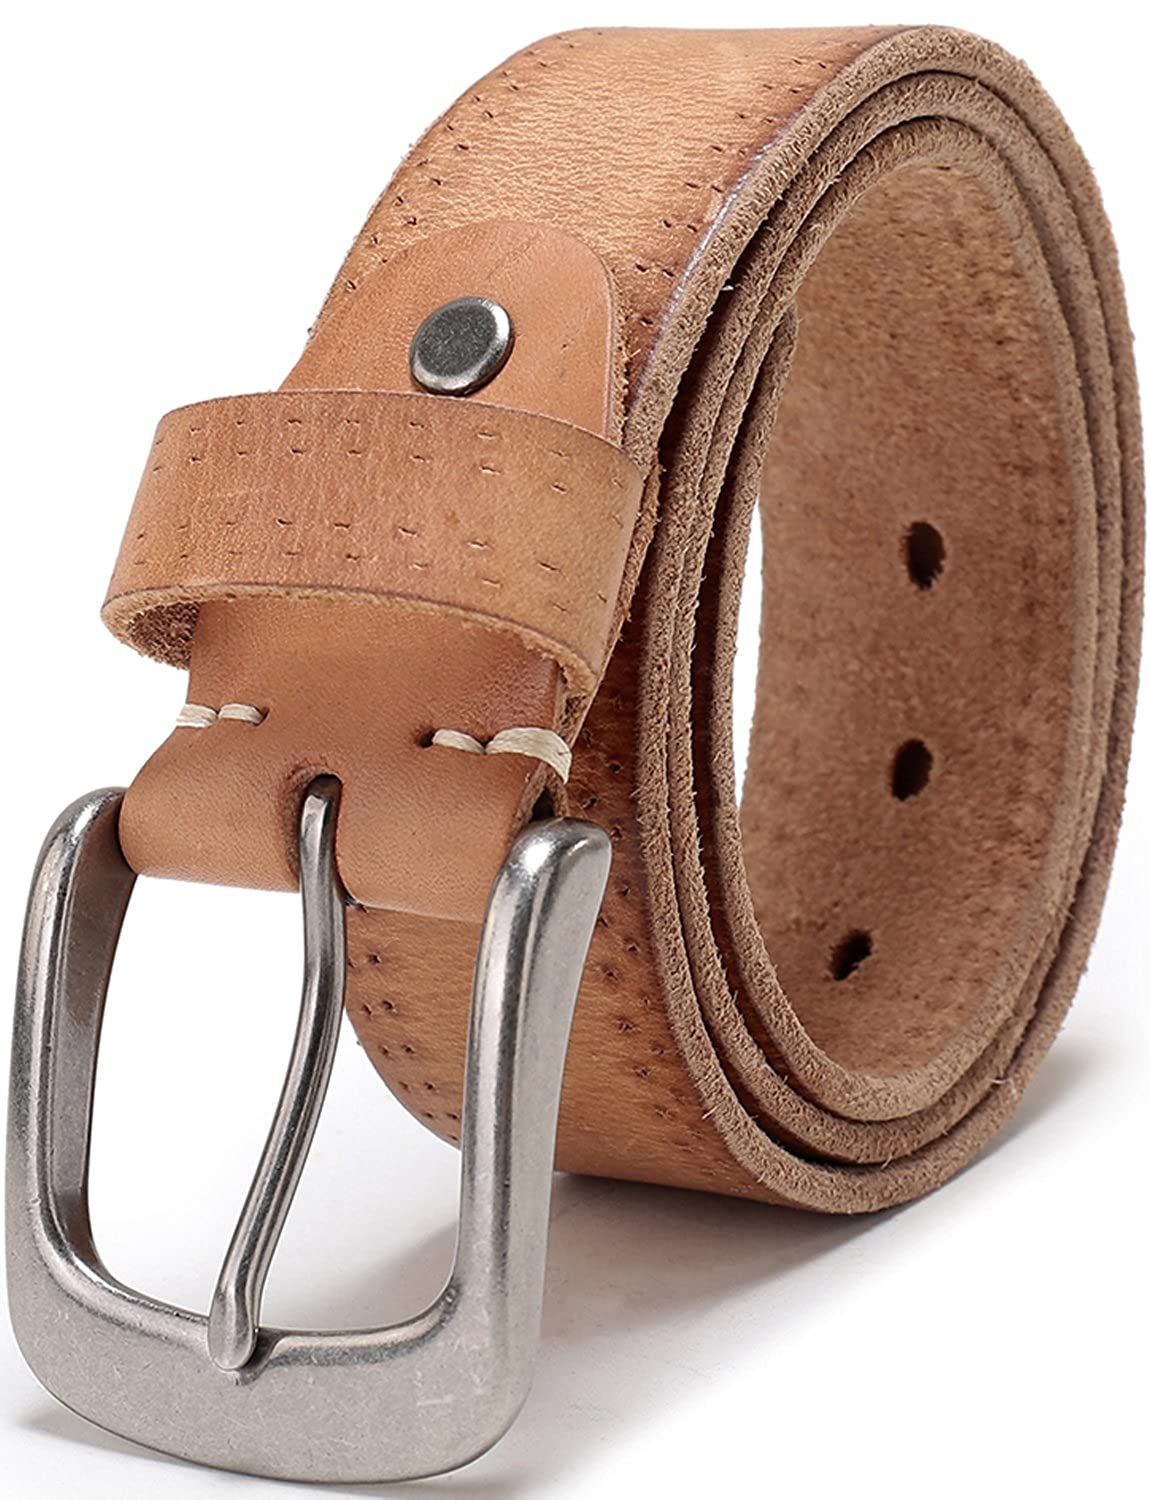 Men's Full Grain 1 1/2 Wide Leather Bridle Belt with Anti-Scratch Vintage Buckle